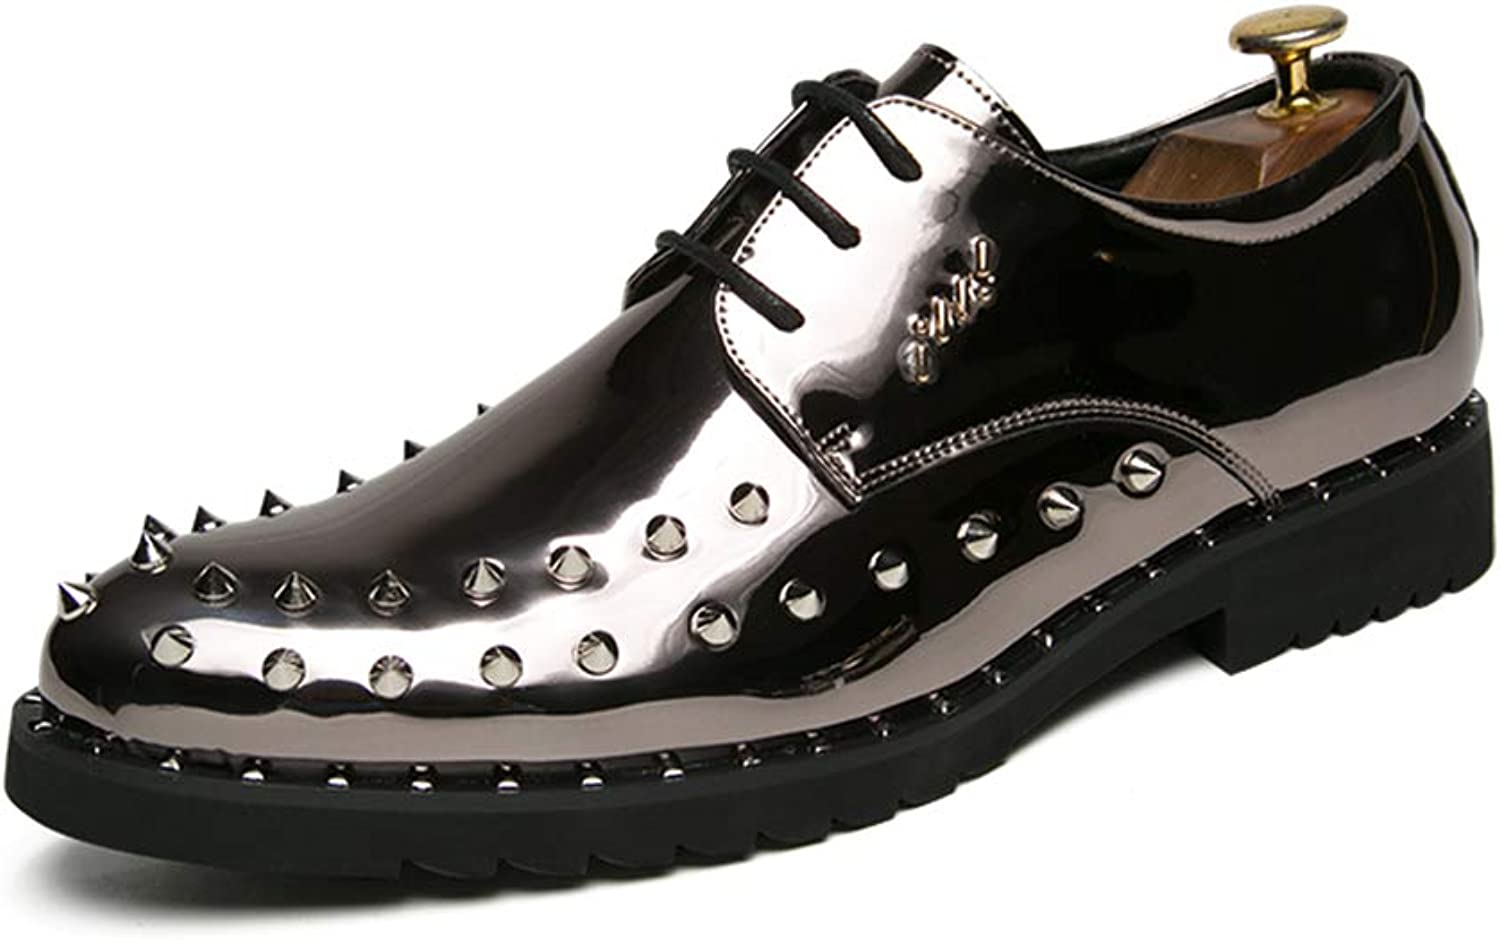 Ying Ying Ying xinguang Herrenmode Oxford Casual Persönlichkeit Niet Lace Up Laufsohle Lackleder Formelle Schuhe. (Farbe   Silber, Größe   44 EU)  f5ace6